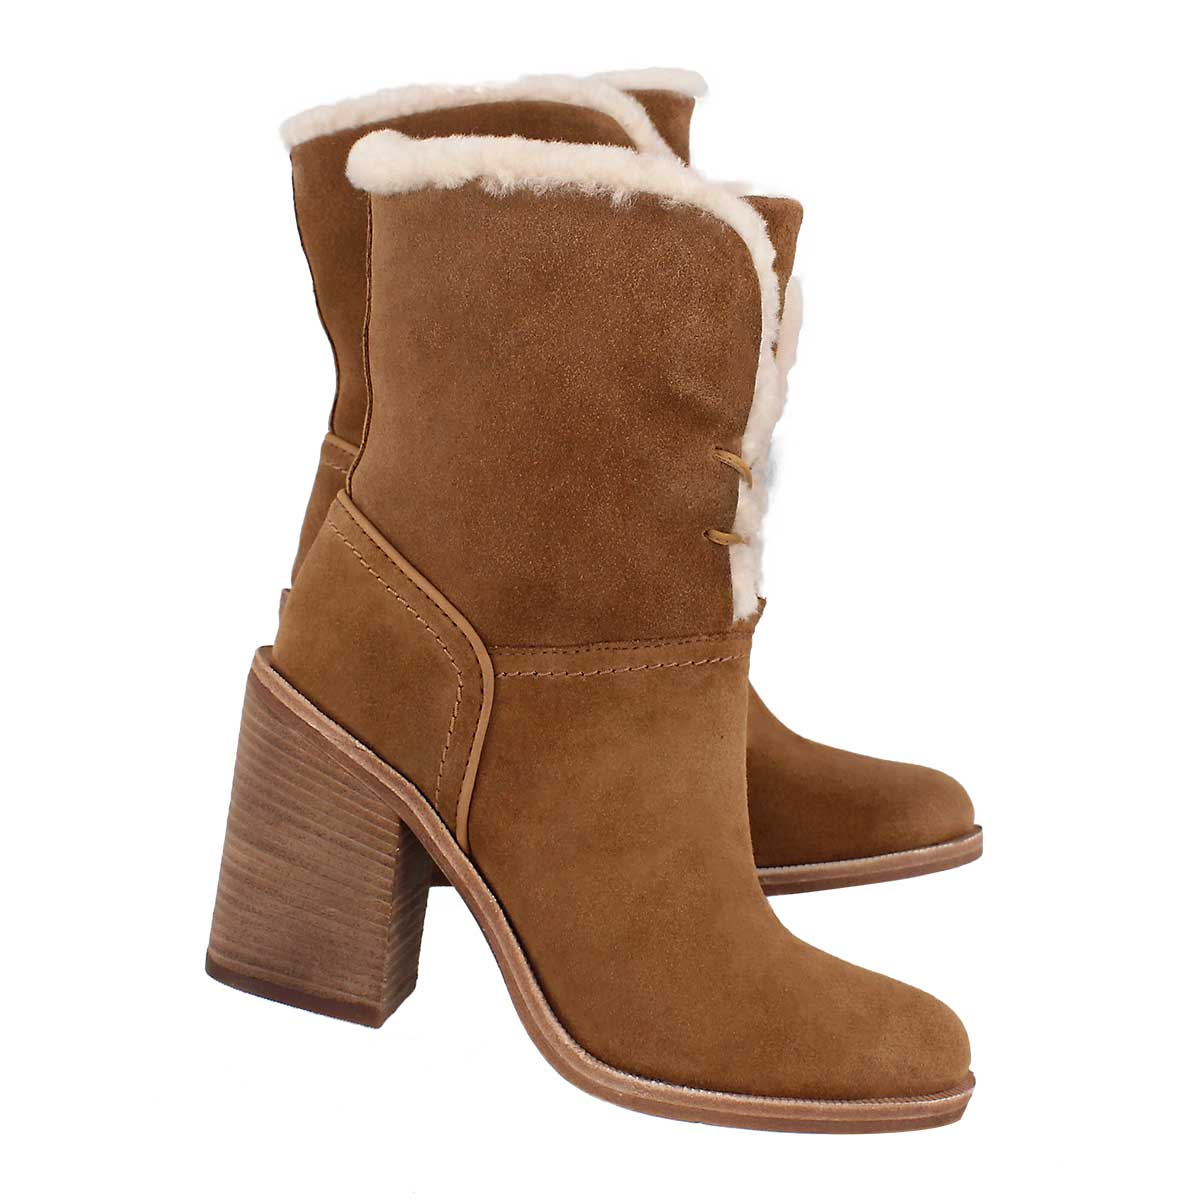 Lds Jerene chestnut casual mid calf boot